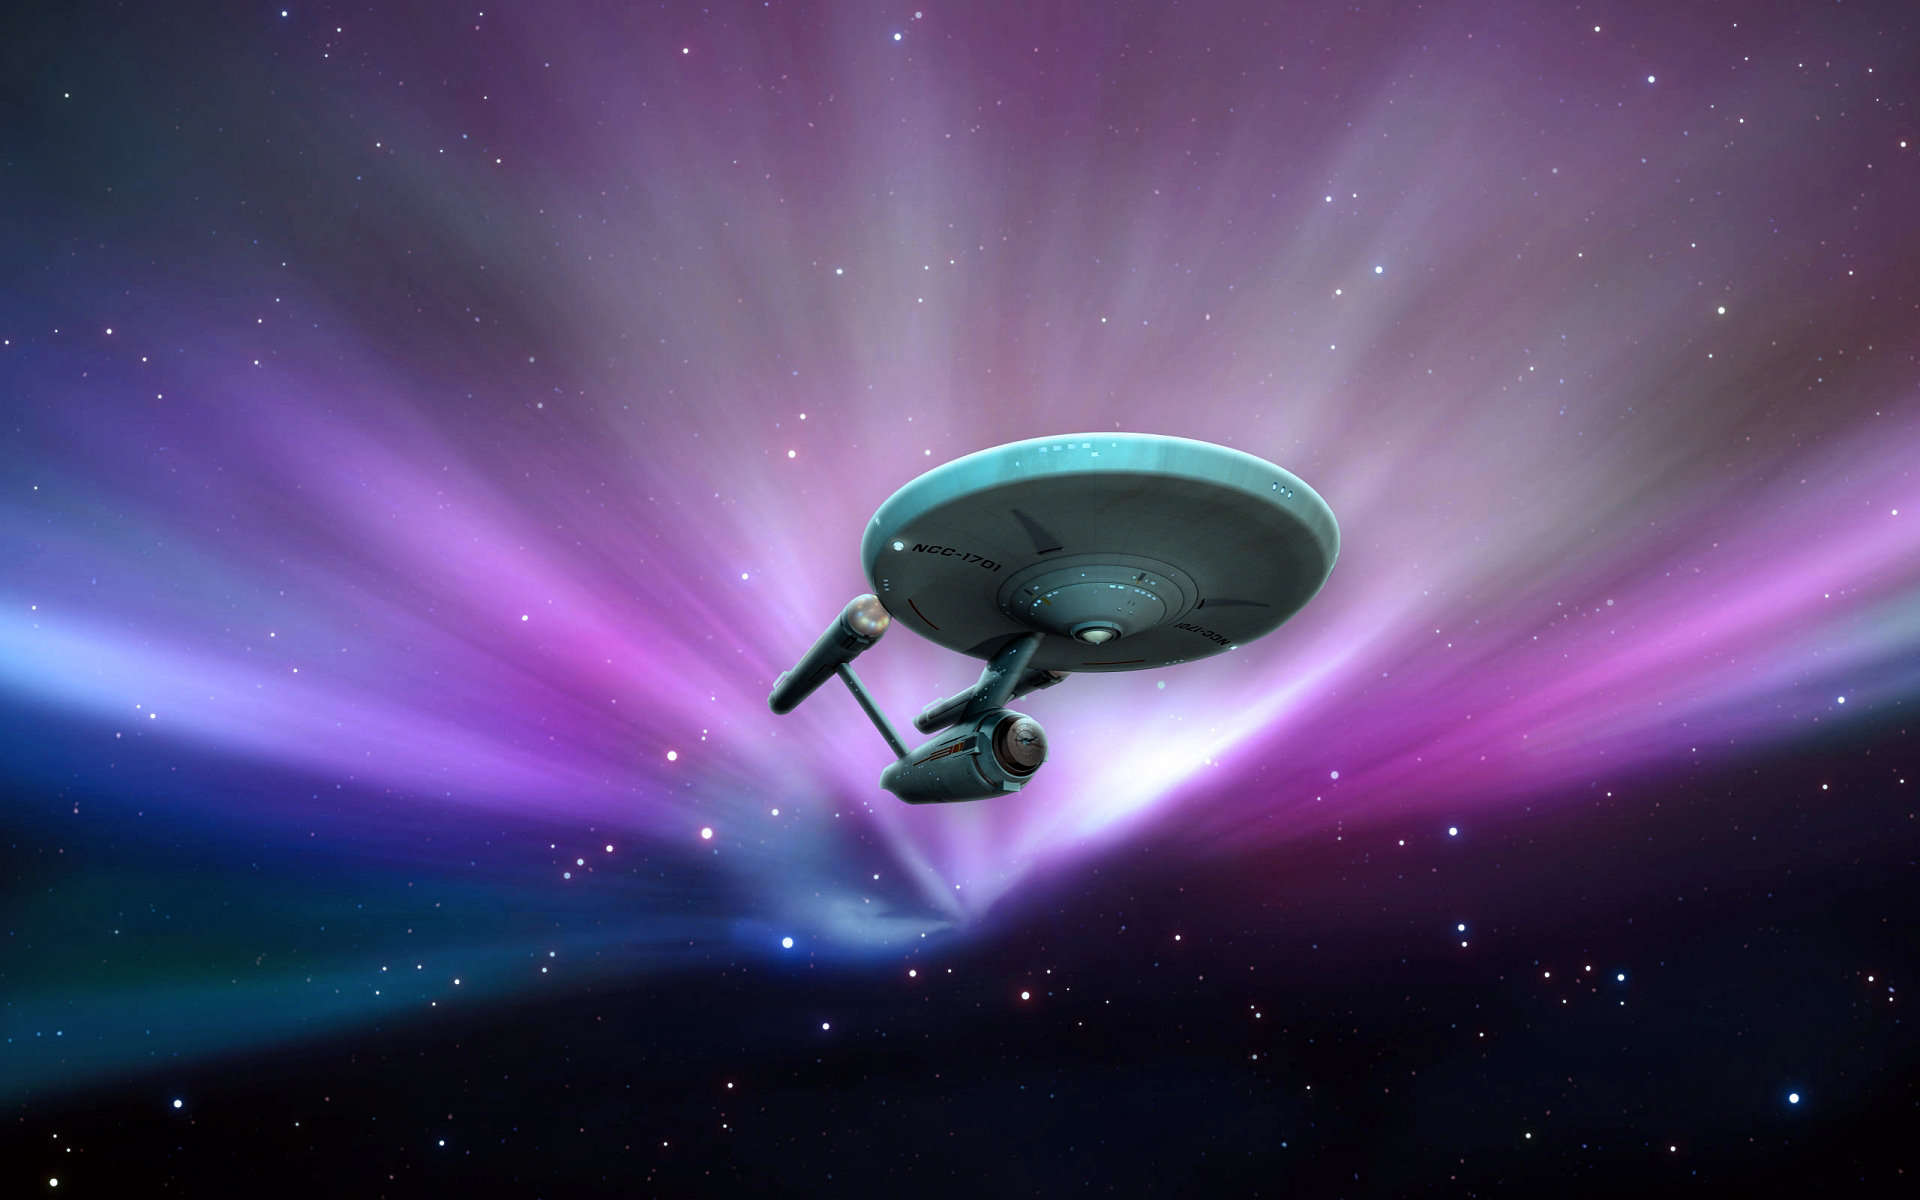 android star trek wallpaper 1920x1080 - photo #4